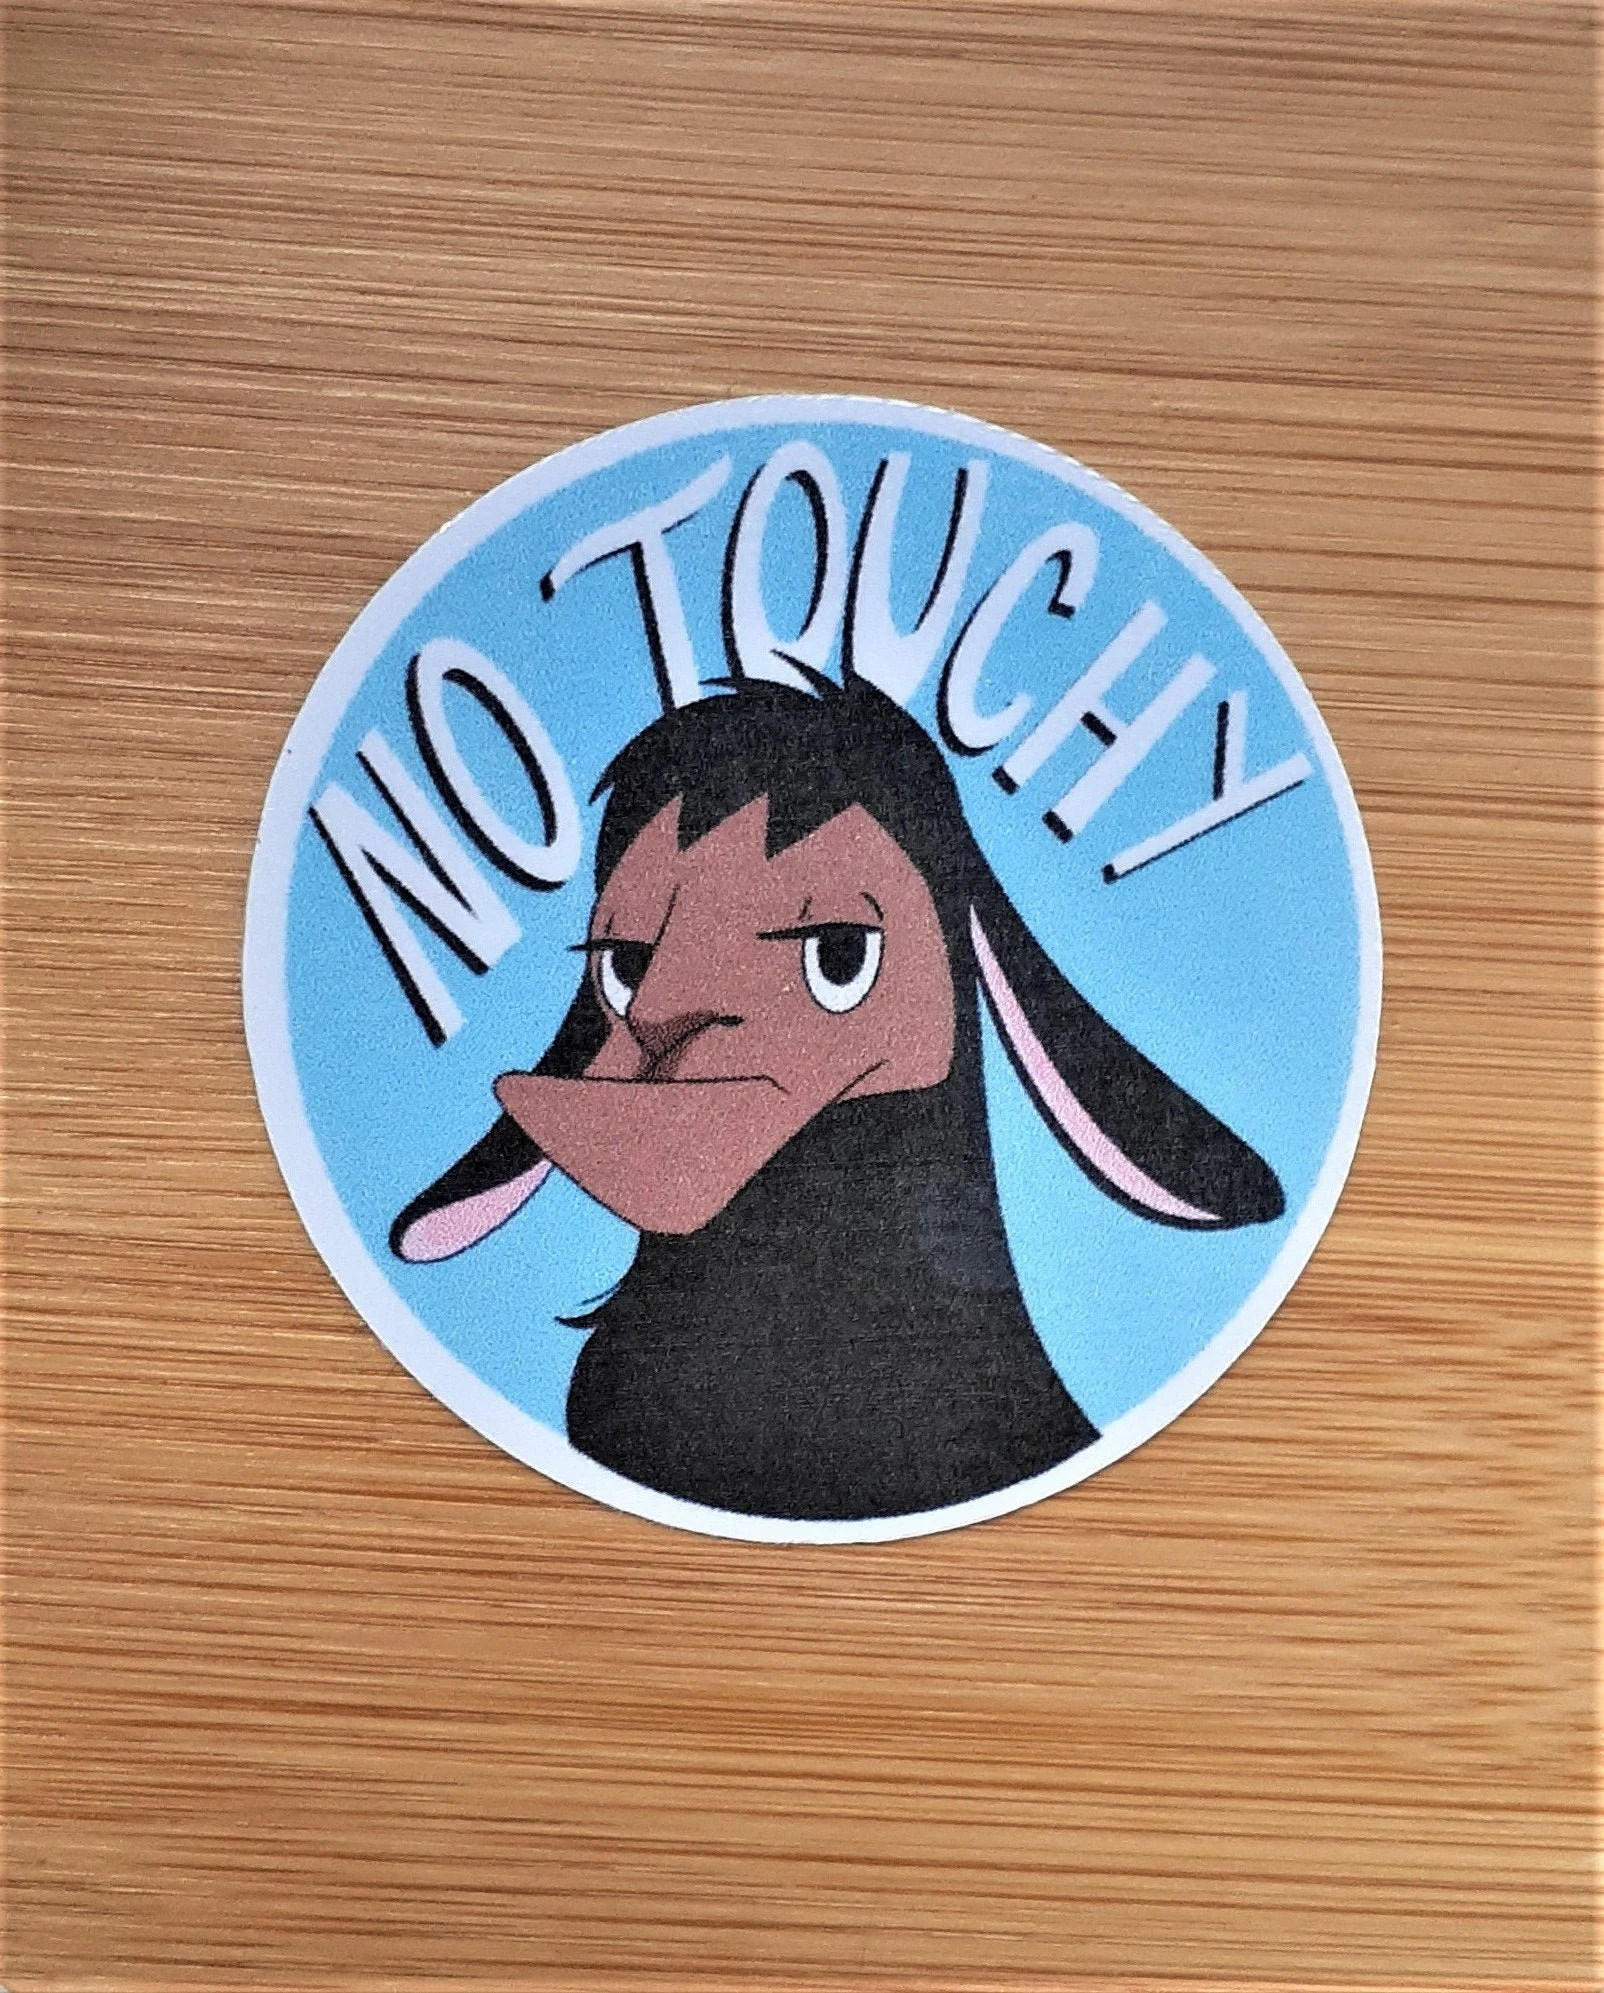 No Touchy Meme : touchy, Touchy, Sticker, Kuzco